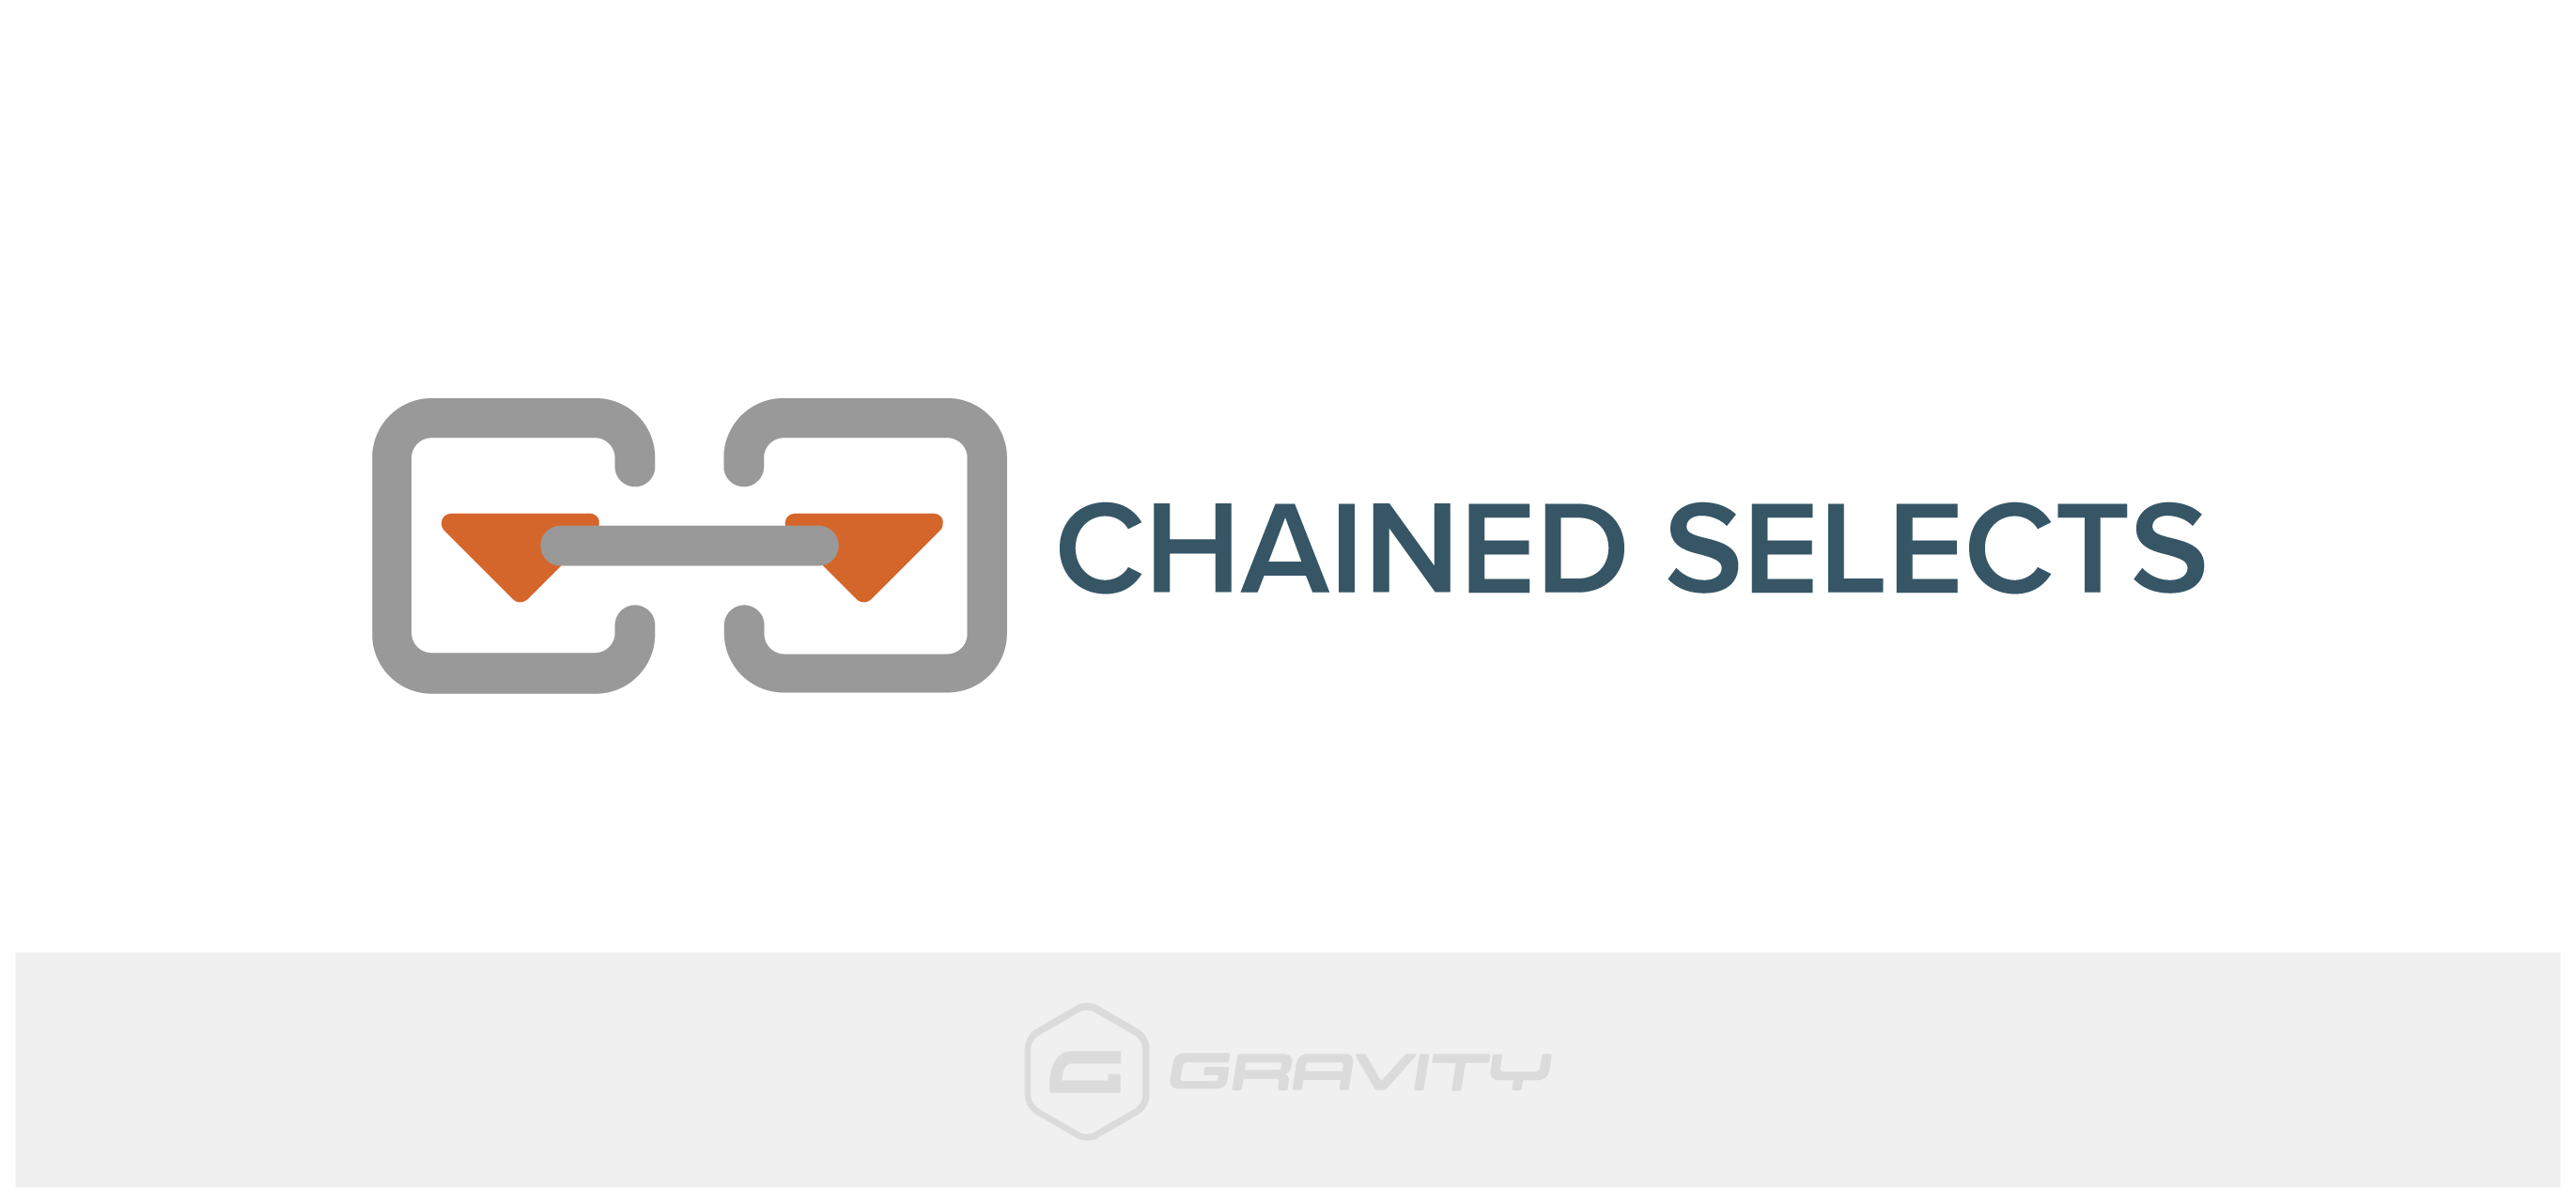 chained_selects